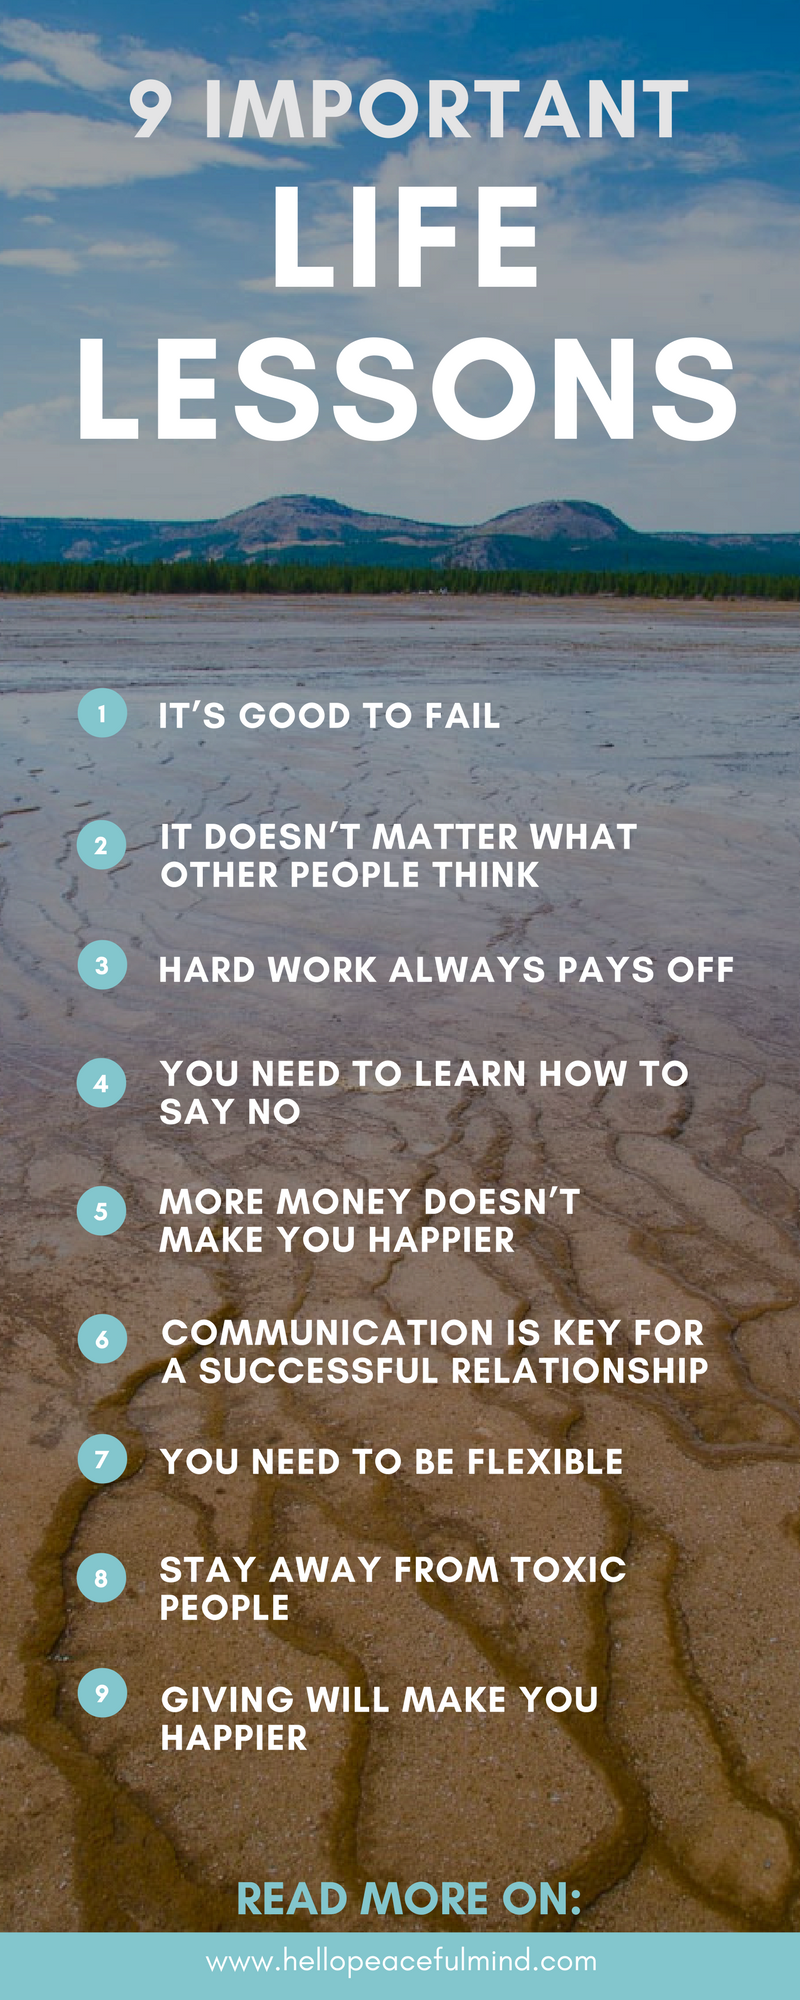 9 Important Life Lessons Every 20 Somethings Should Know